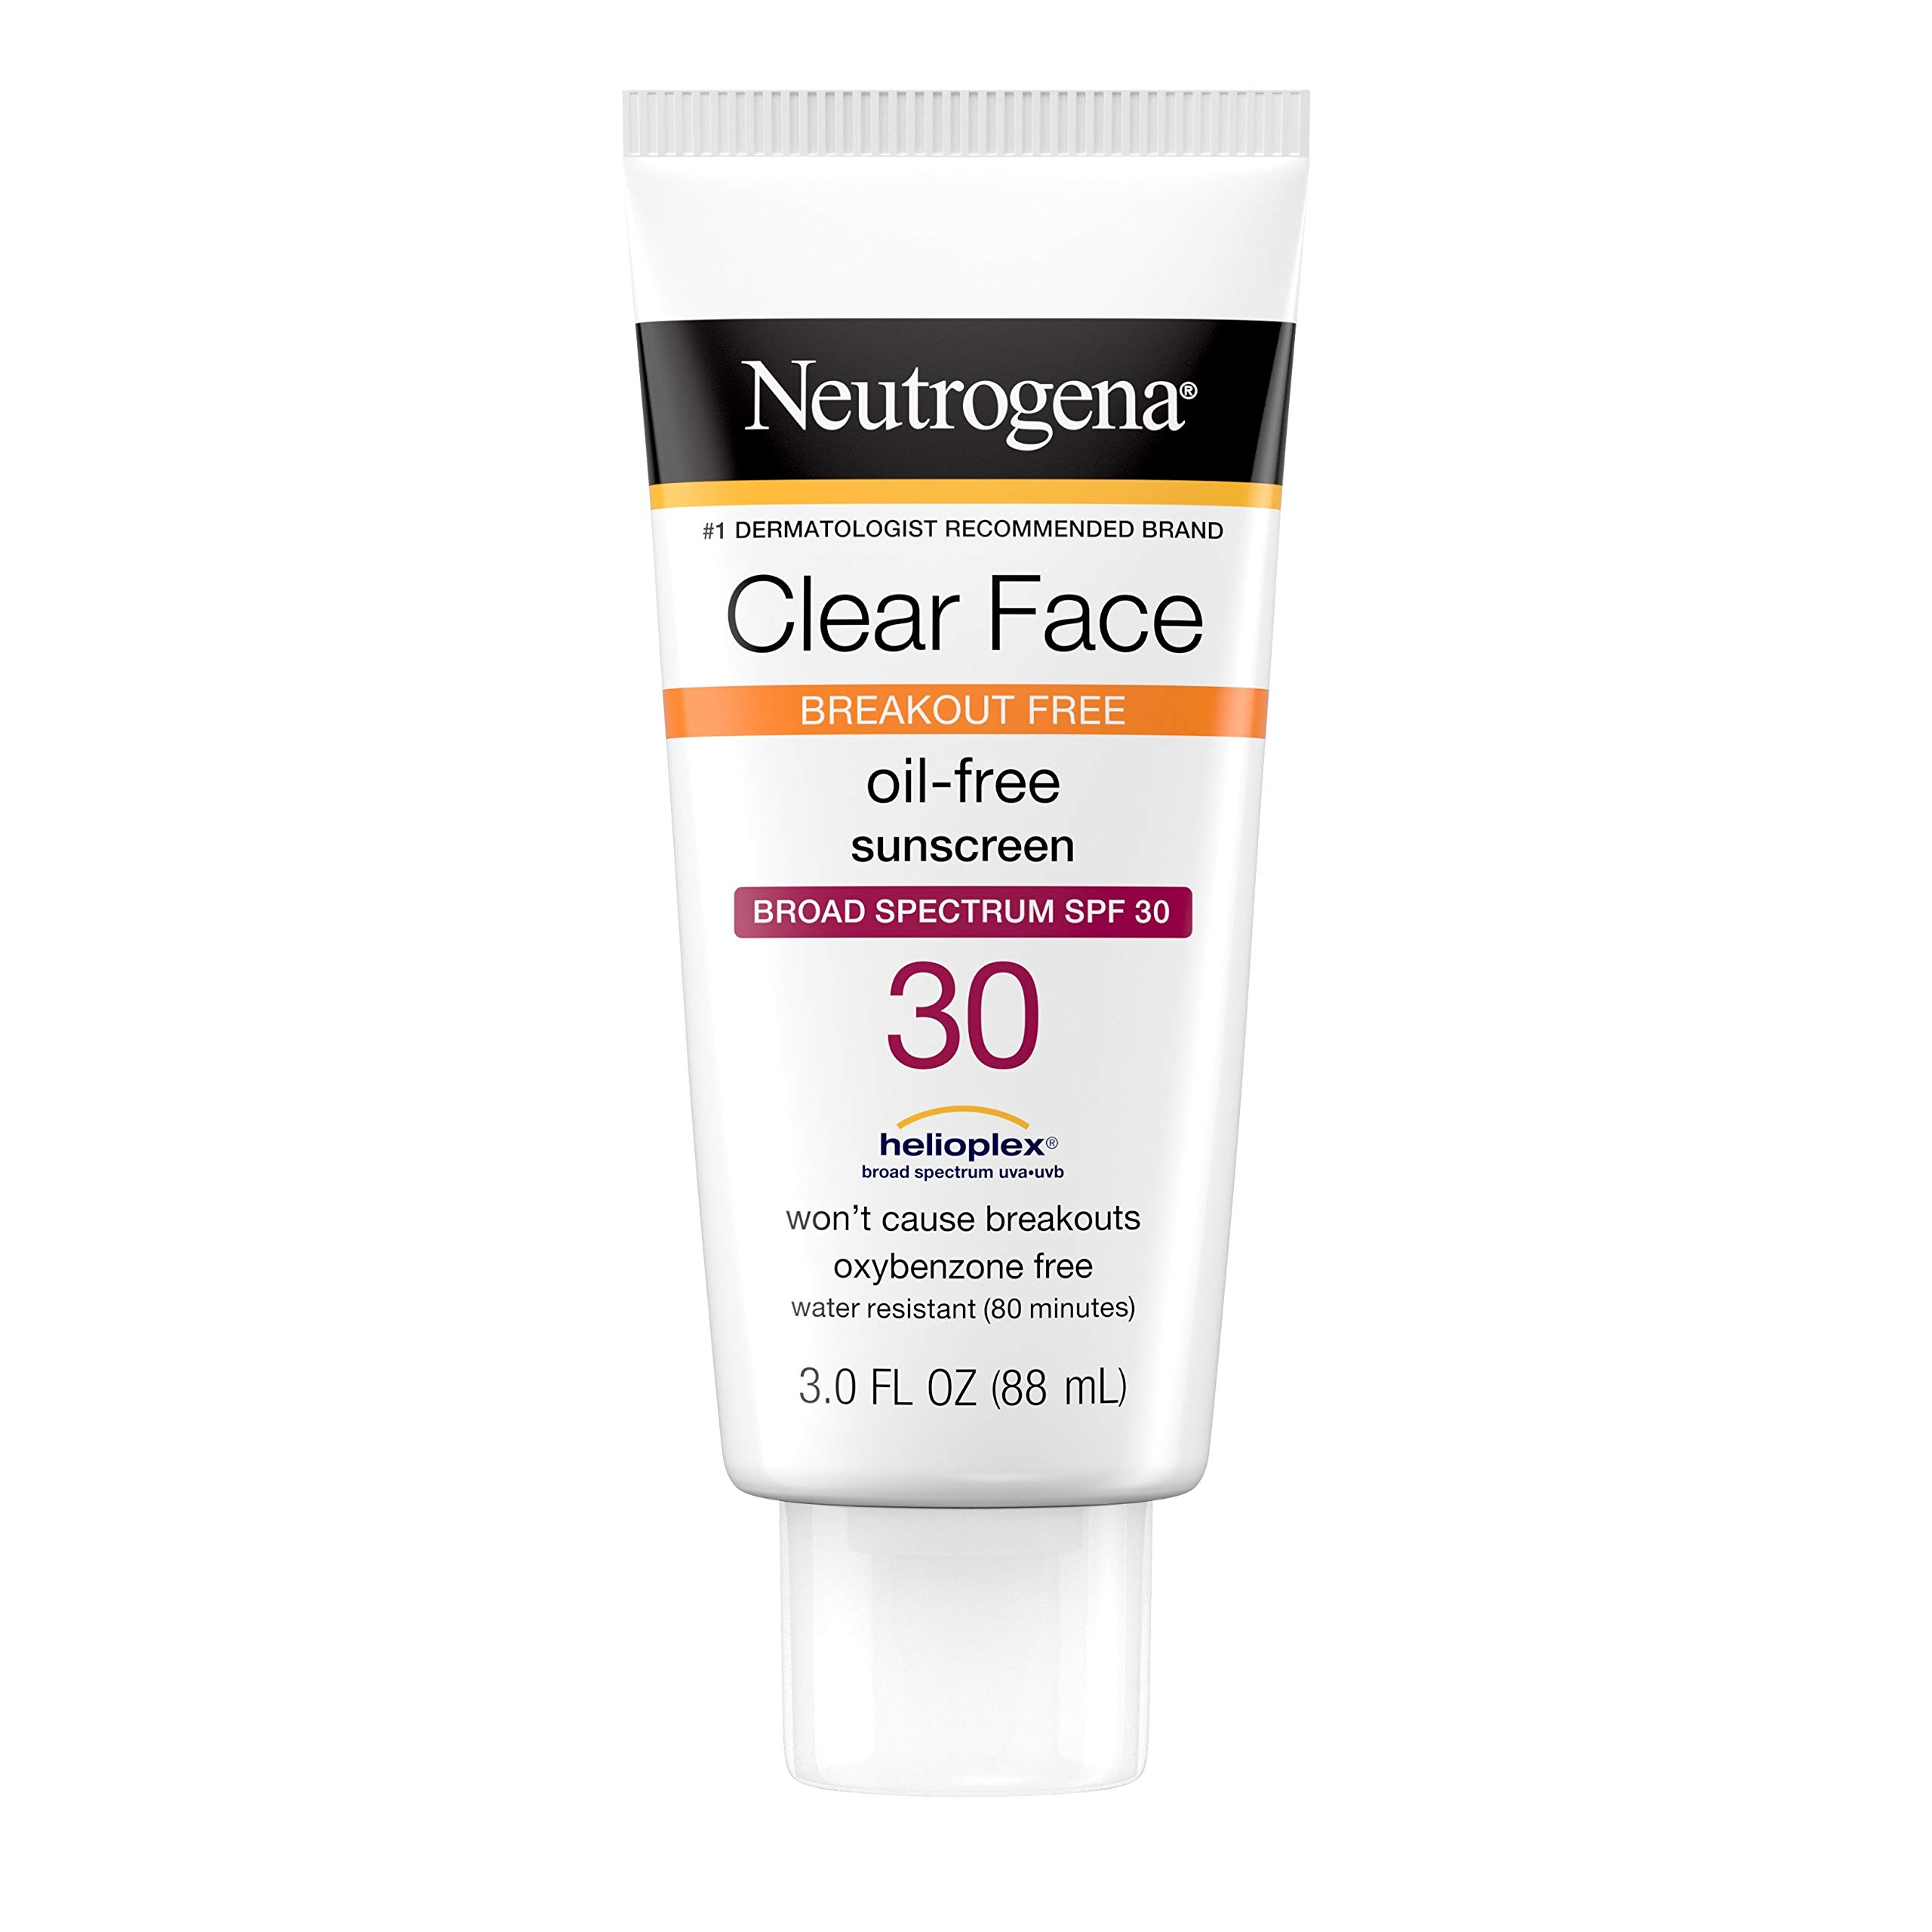 Neutrogena Clear Face Liquid Sunscreen for Acne-Prone Skin, Broad Spectrum SPF 30 Sunscreen Lotion with Helioplex, Oxybenzone-Free, Oil-Free, Fragrance-Free; Non-Comedogenic, 3 fl. oz